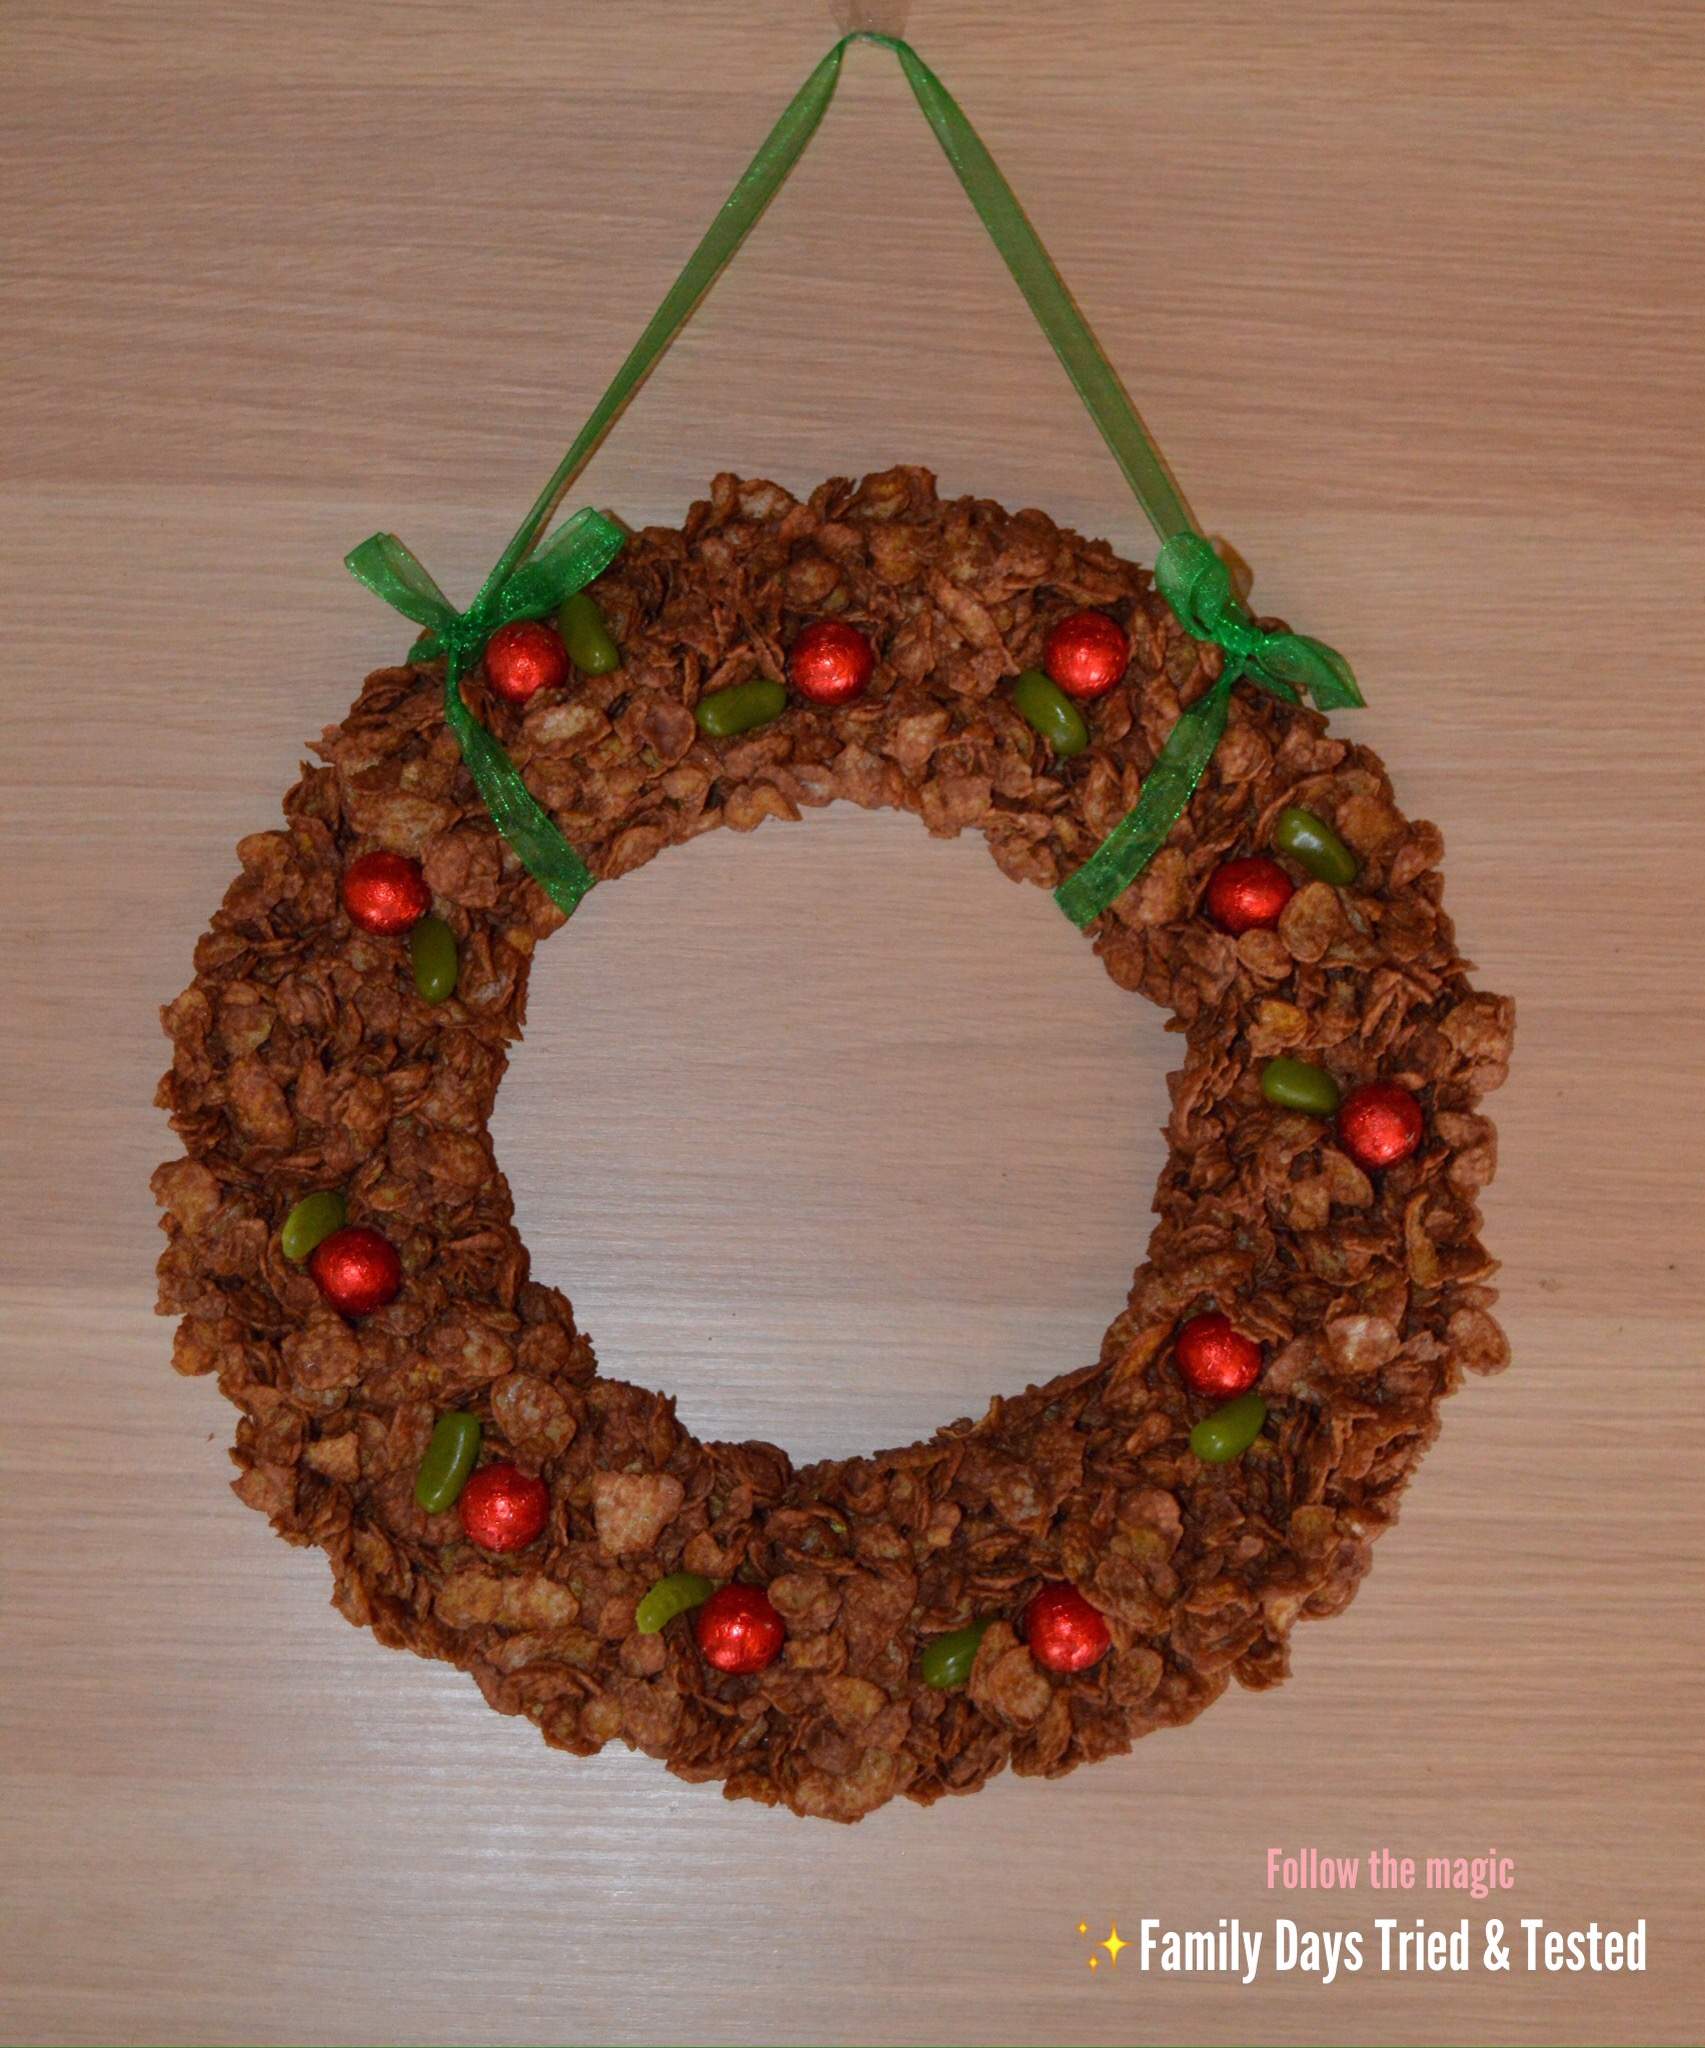 Chocolate Crispy Cake Festive Wreath